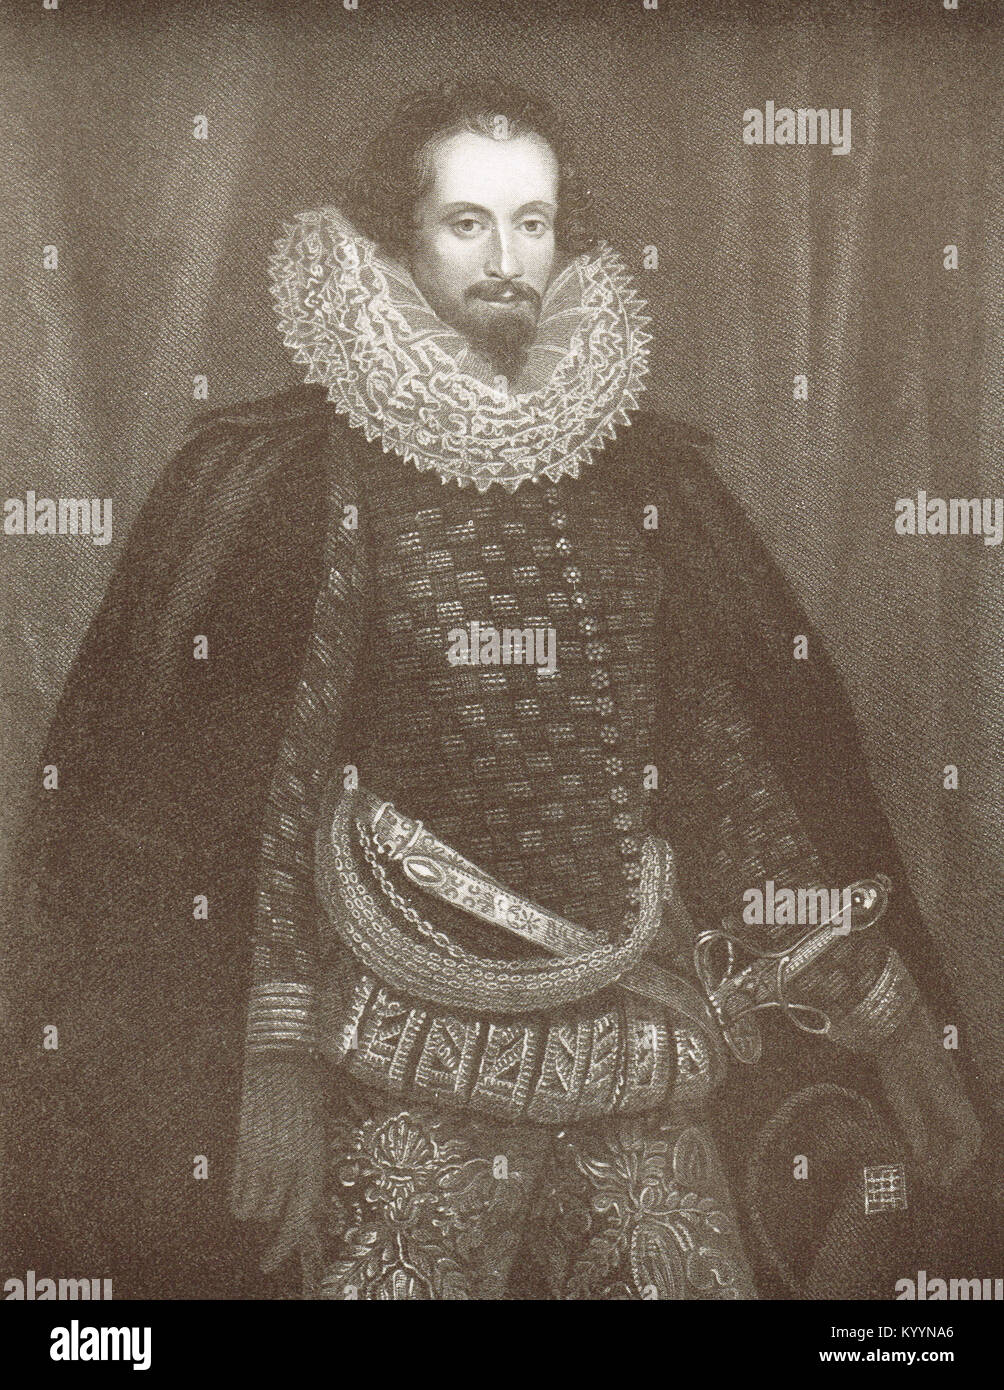 Robert Devereux, 2nd Earl of Essex - Stock Image